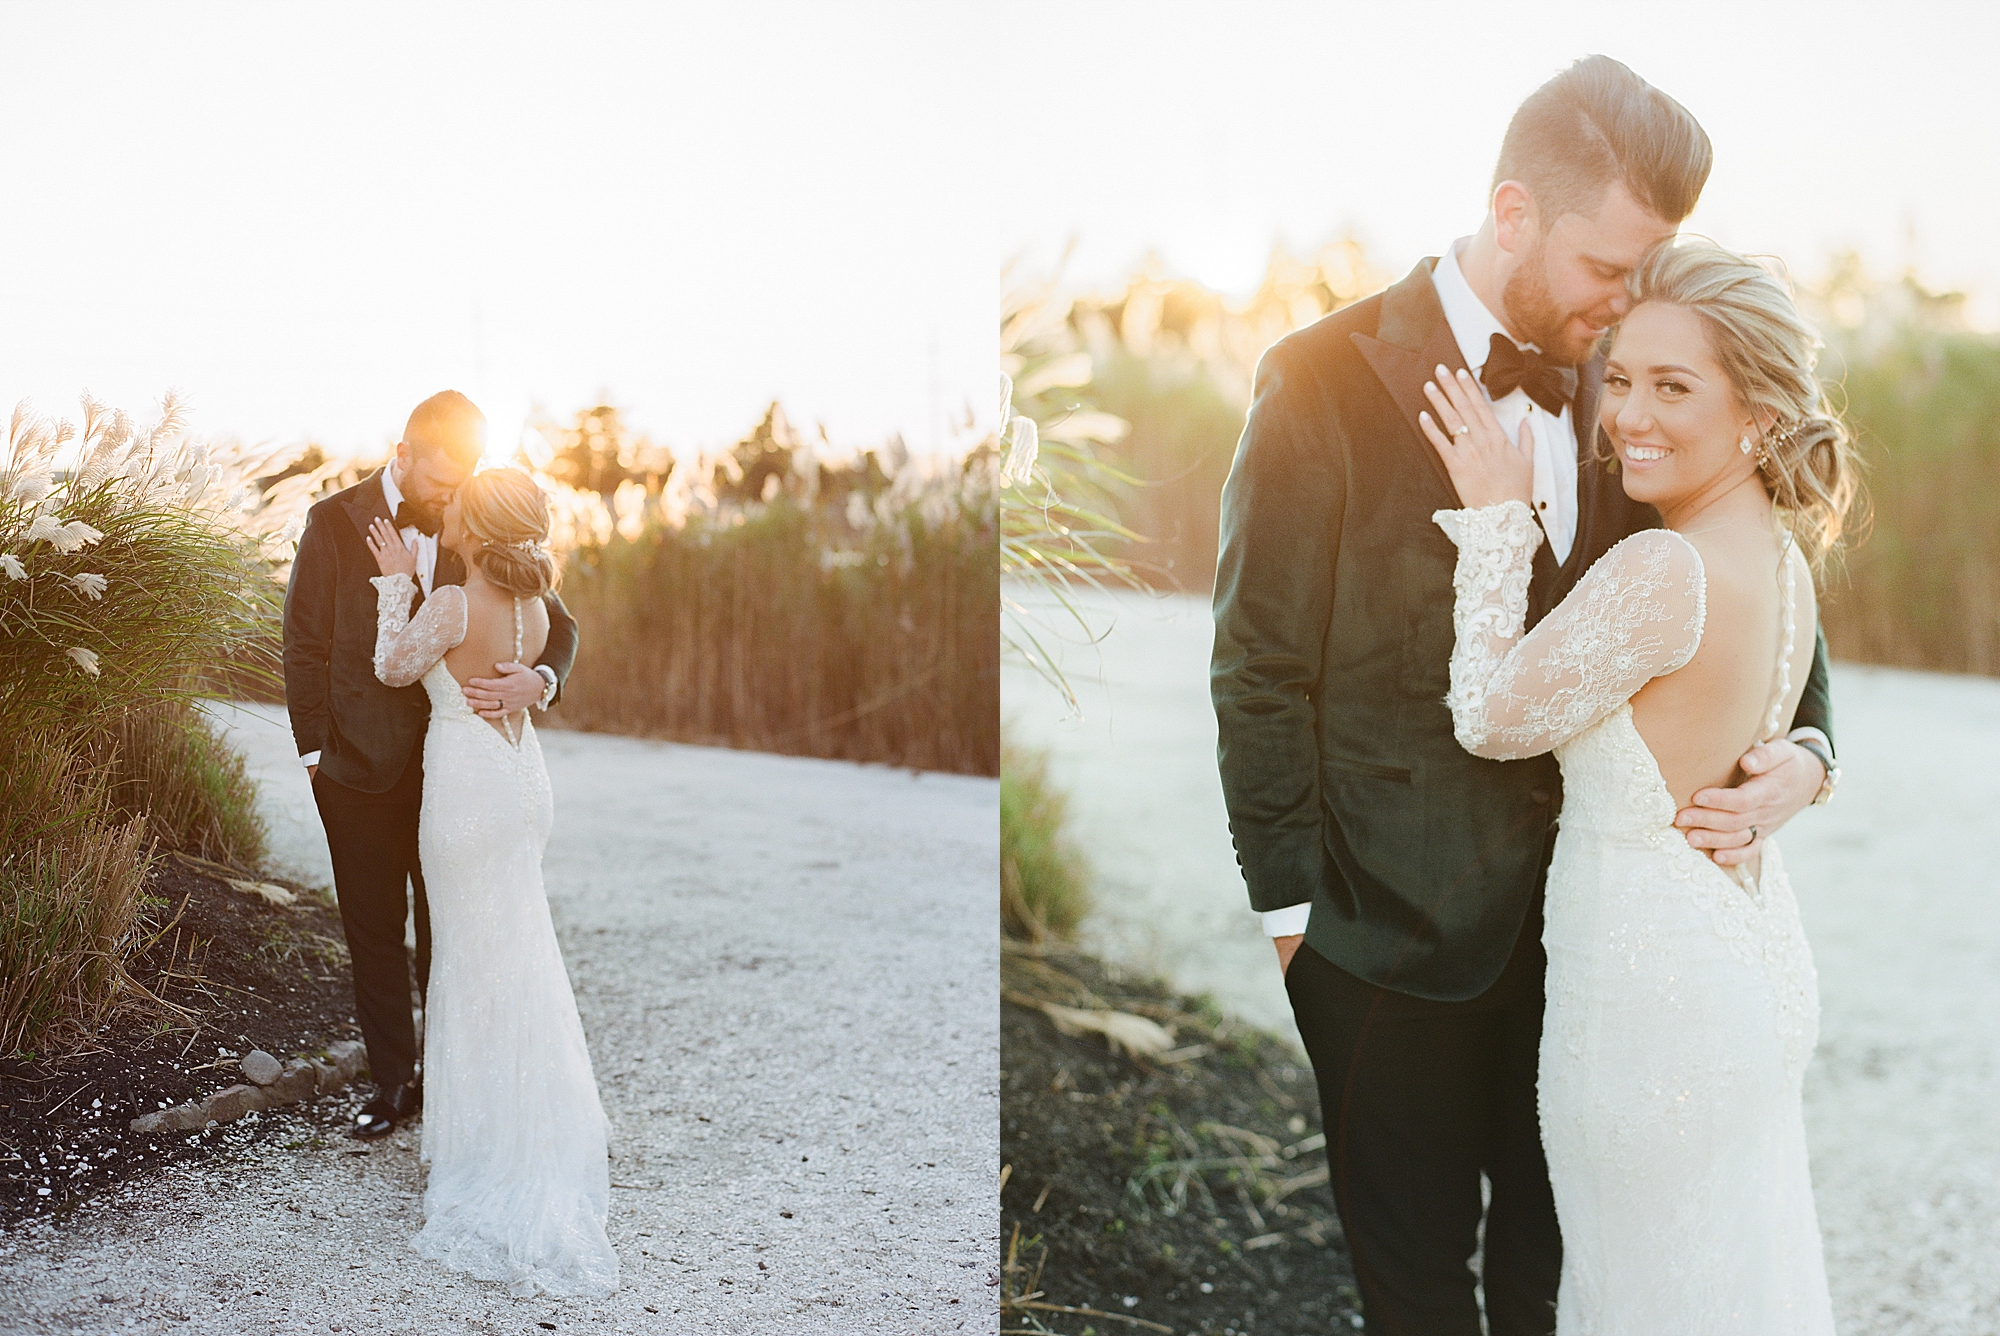 Bonnet Island Estate Film Wedding Photography by Magdalena Studios 0053